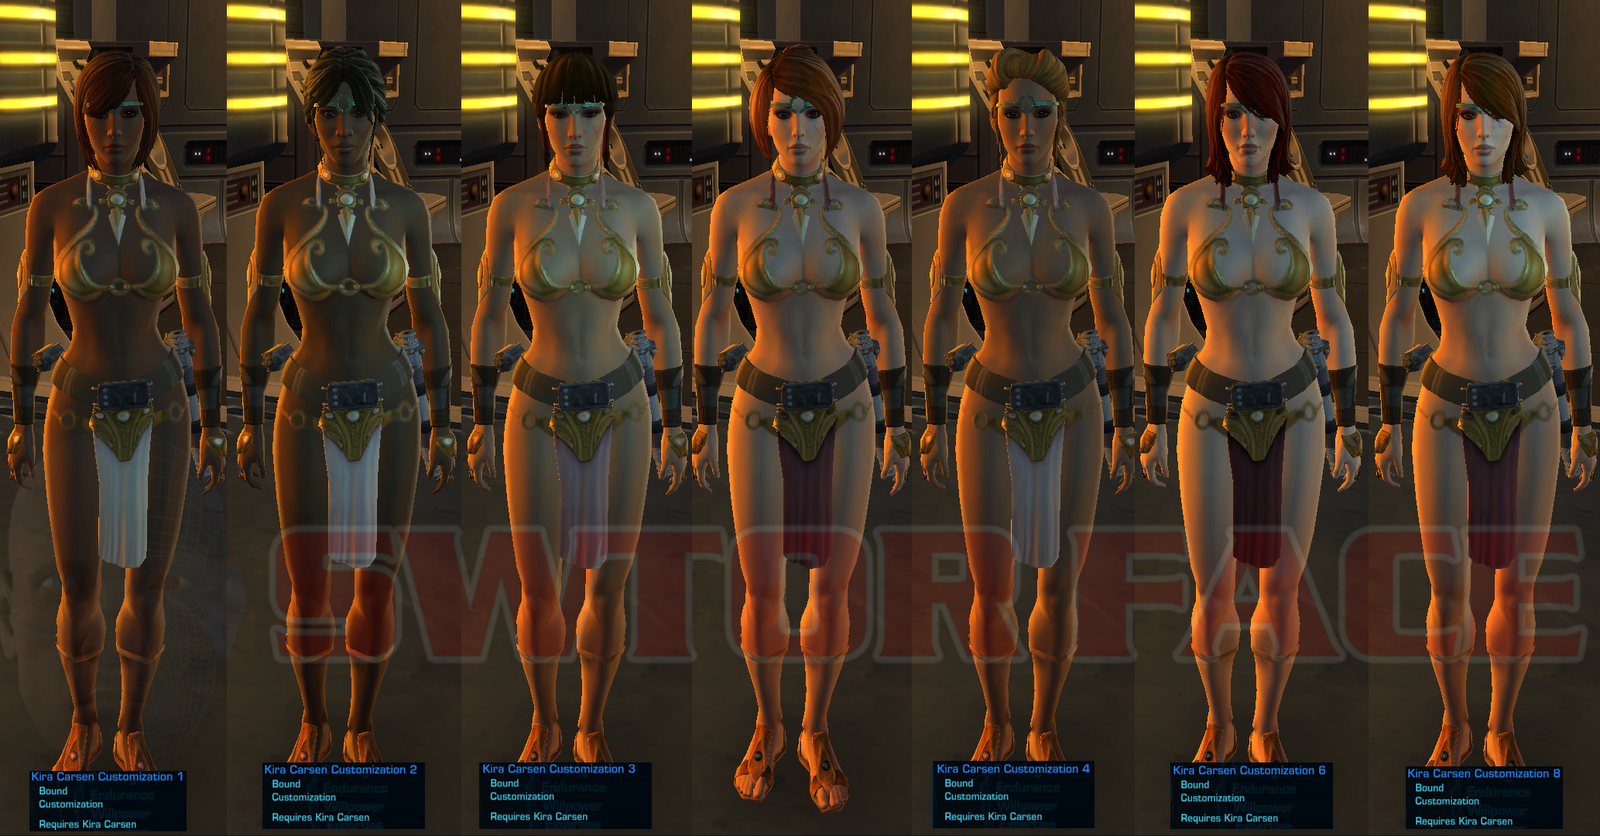 Star wars kotor nude mods exploited pictures